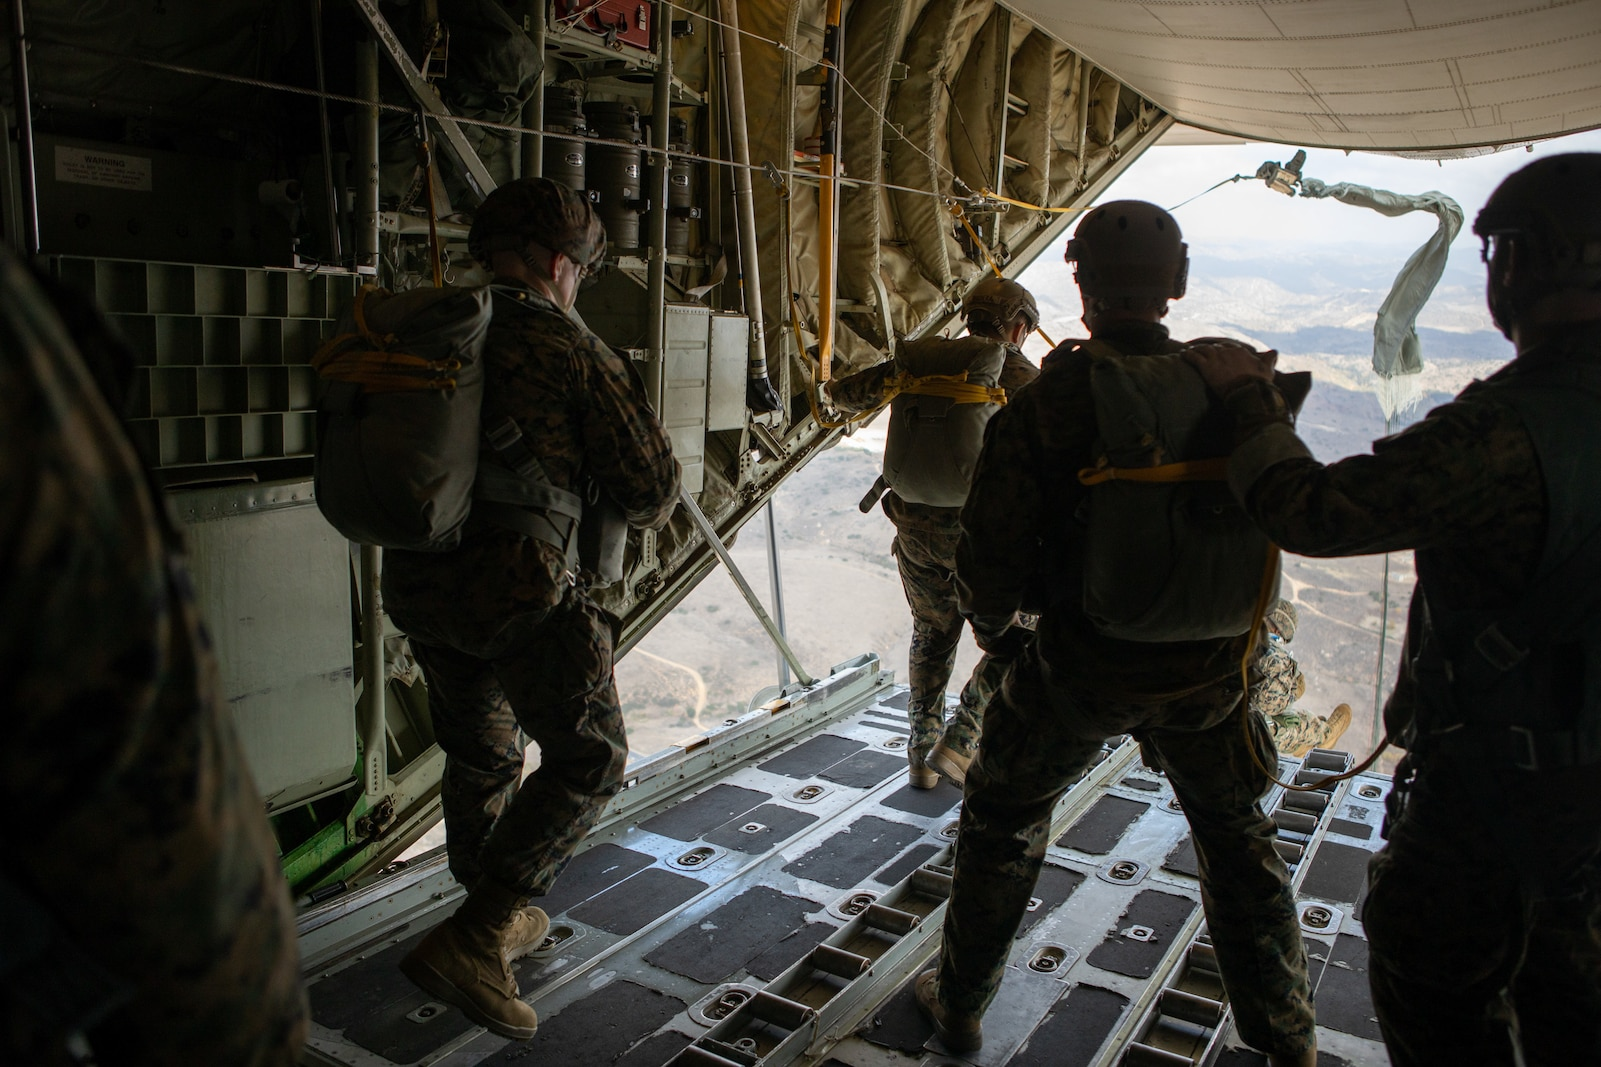 U.S. Marines with 1st Radio Battalion, I Marine Expeditionary Force Information Group, prepare to exit a KC-130J Super Hercules aircraft during a static-line parachute jump Dec. 10, 2020. The training allowed Marines of 1st Radio Battalion to practice an airborne deployment with cargo drops and static-line jumpers at Marine Corps Base Camp Pendleton, California. (U.S. Marine Corps photo by Lance Cpl. Isaac Velasco)